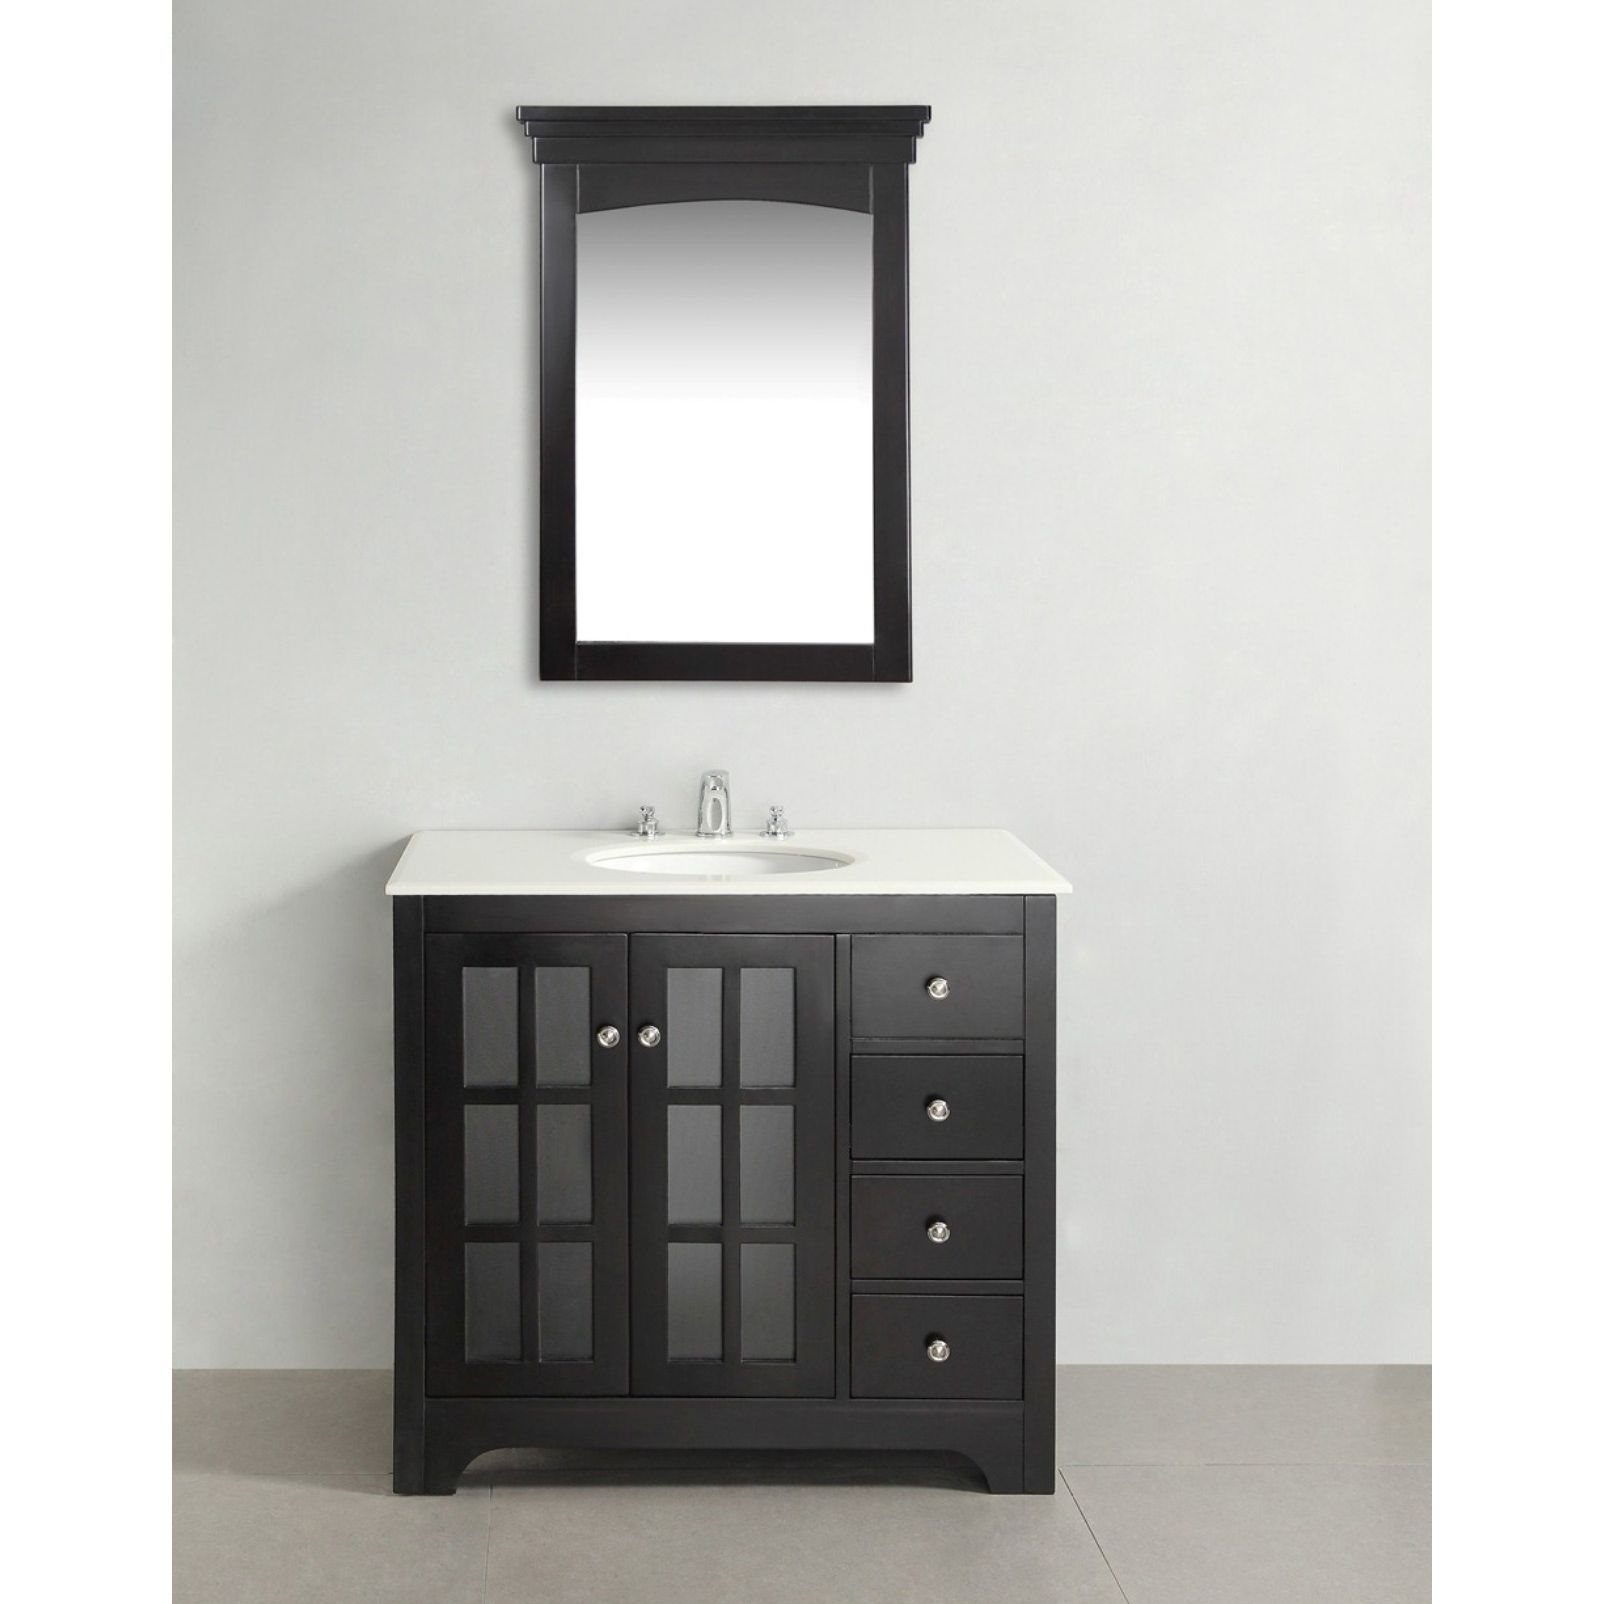 Marvelous The 36 Inch Louisiana Bathroom Vanity Is Defined By A Black Finish, Brushed  Nickel Knobs And Casual Contemporary Look. The Beautiful Assembled Vanity  ...